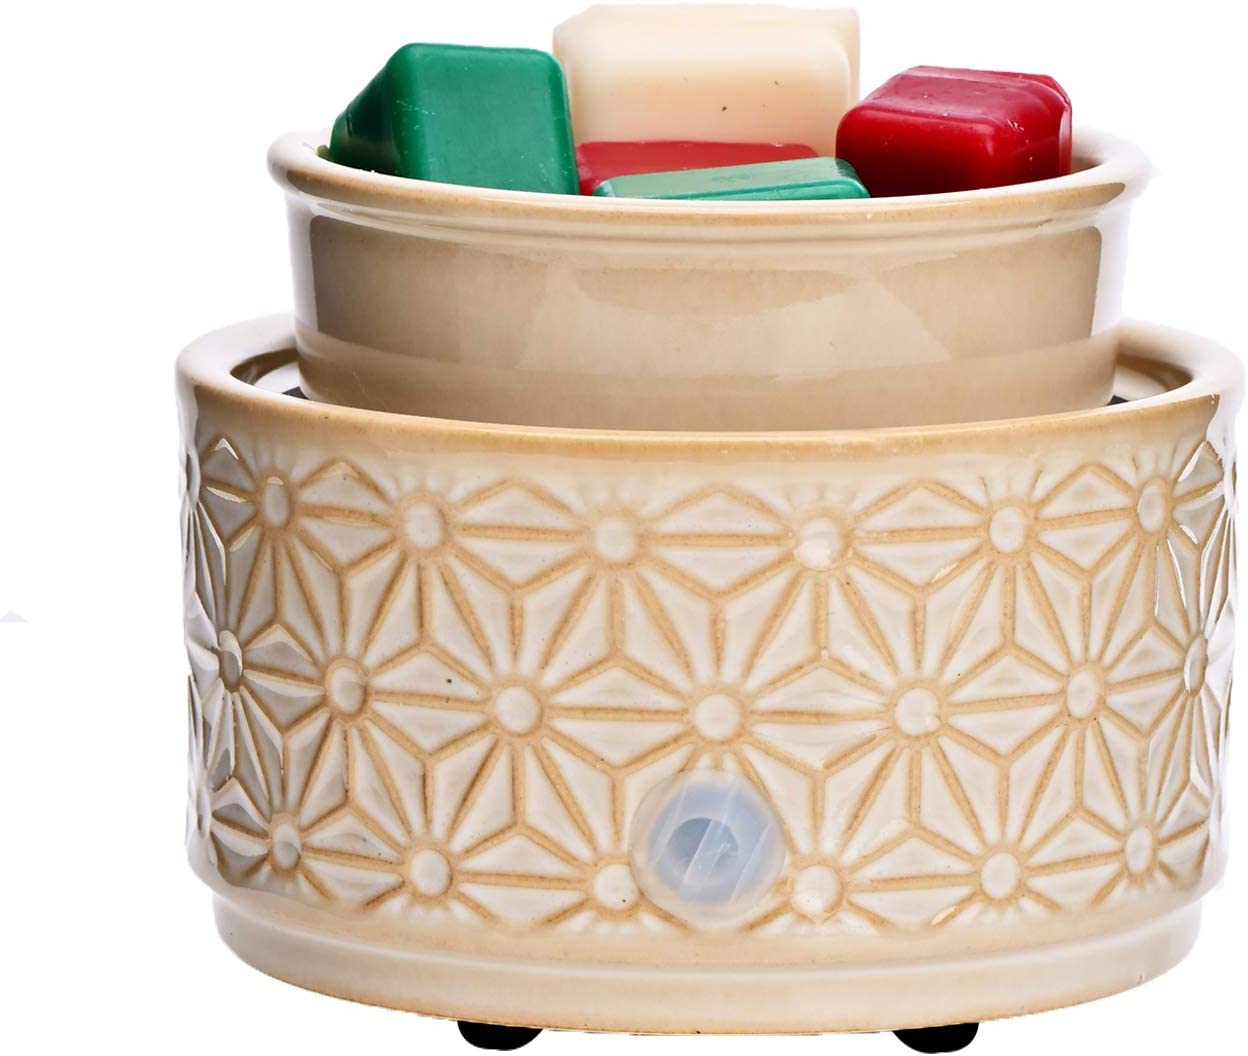 ASAWASA Ceramic Electric Wax Melt Warmer,Candle Waxing Warmer,Use Melts Cubes Essential Oils and Fragrance Oils,Gifts for Aromatherapy Spa Home 4.02